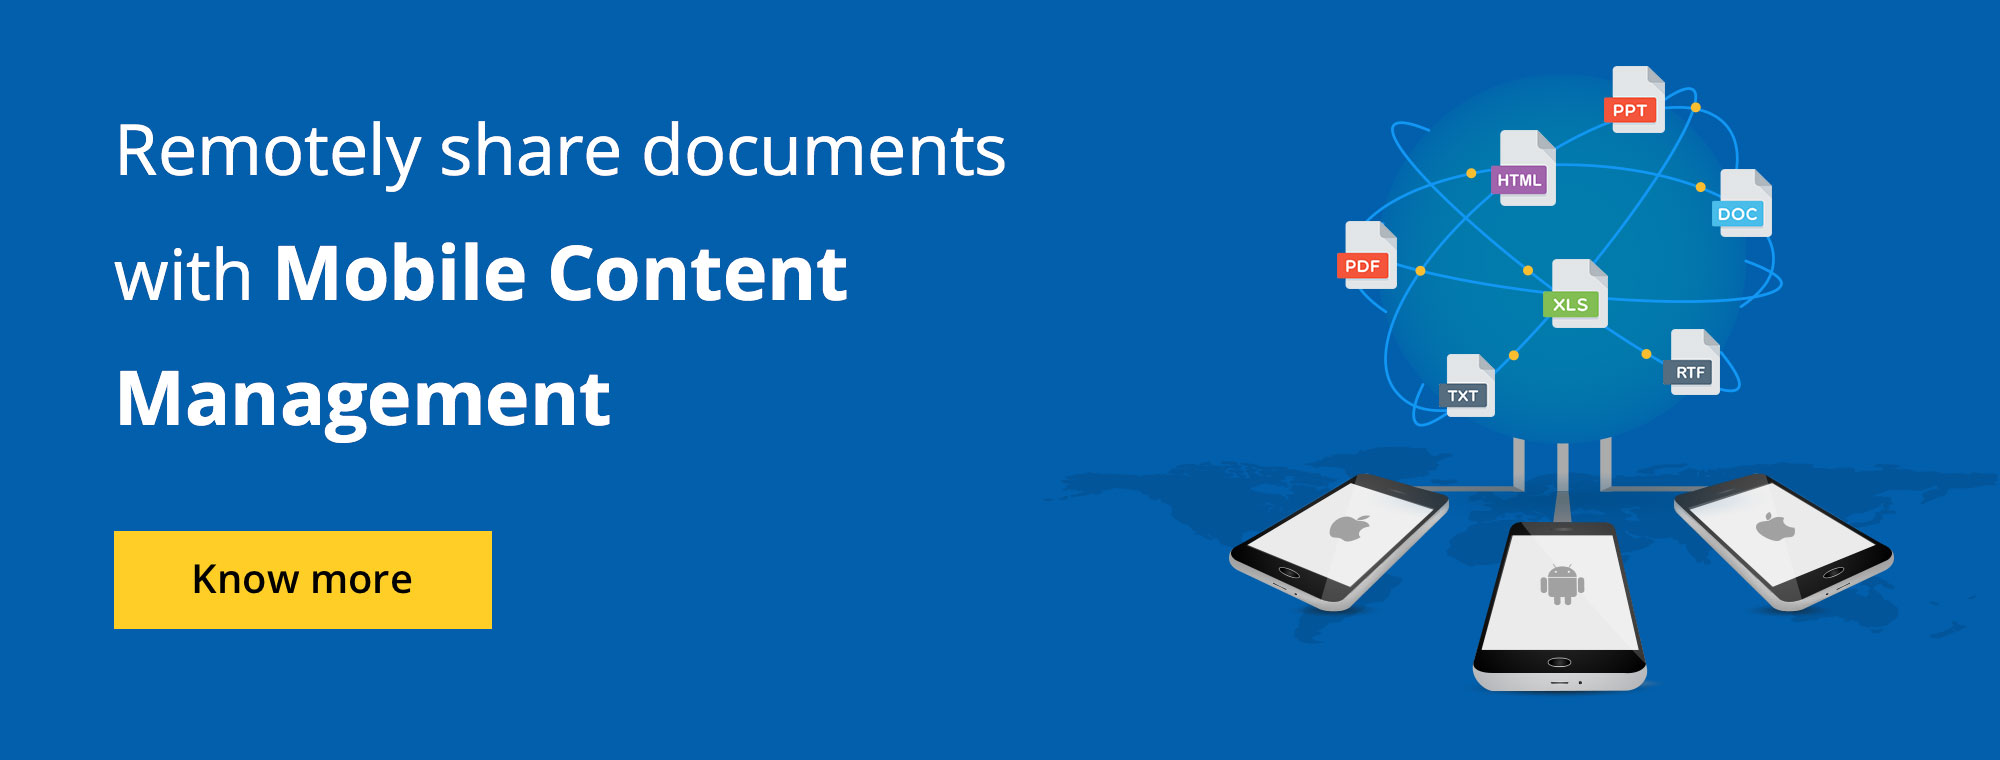 Remotely share documents with Mobile Content Management.